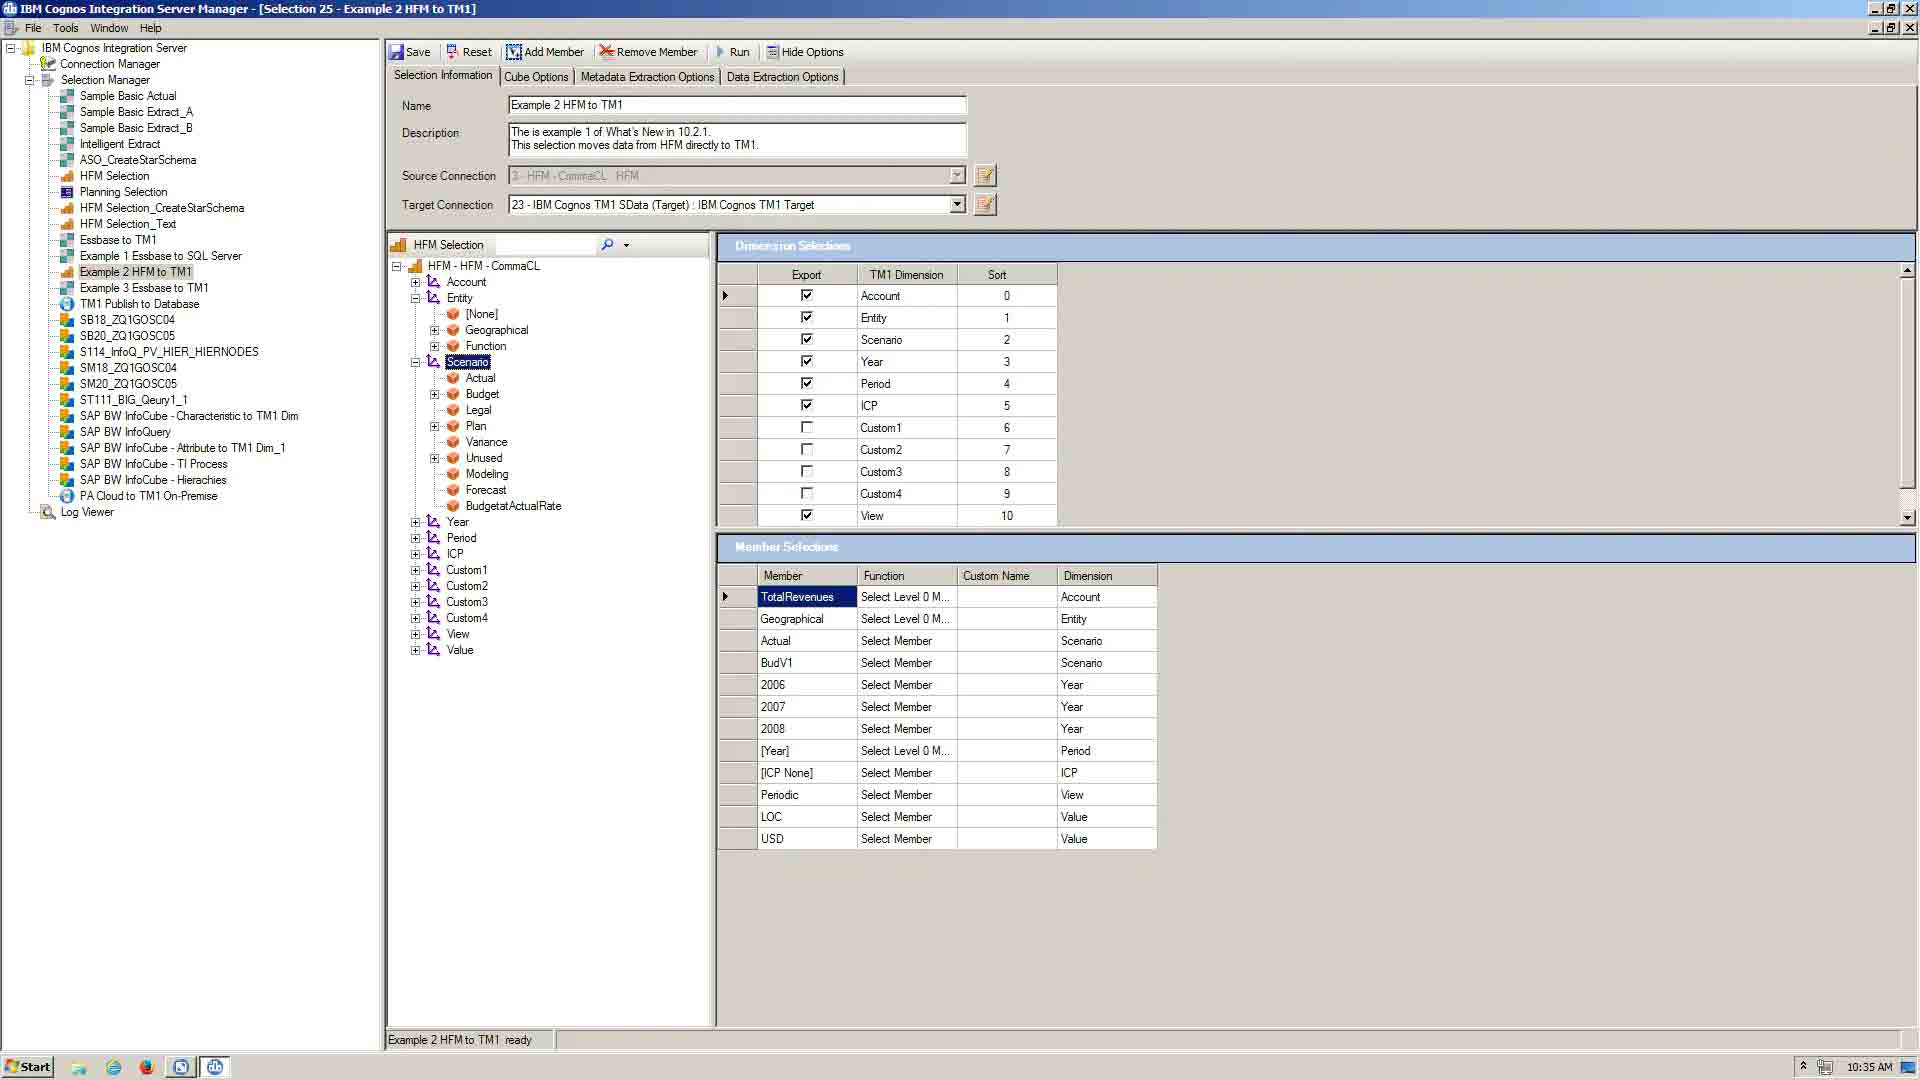 Screenshot showing IBM Cognos Integration Server dashboard